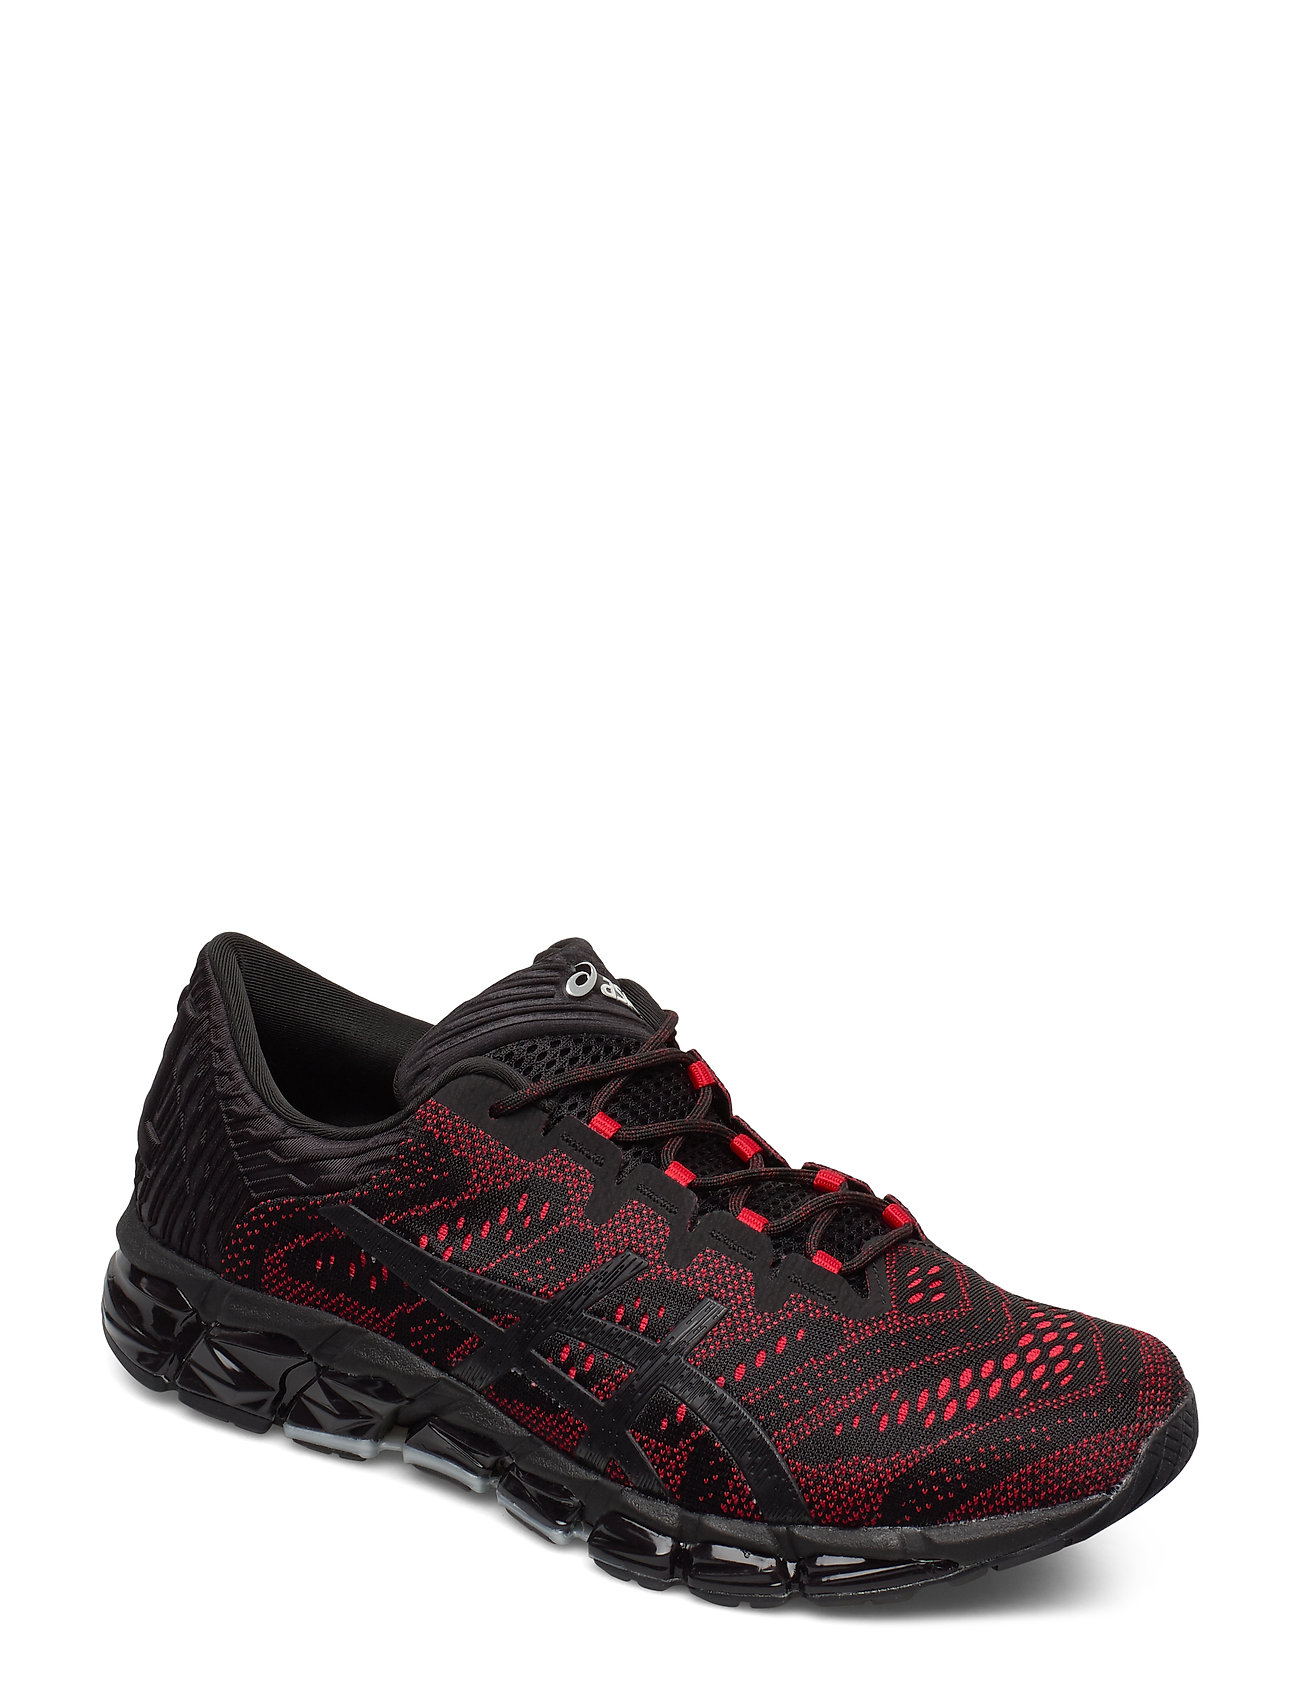 ASICS Gel-Quantum 360 5 Jcq Shoes Sport Shoes Running Shoes Schwarz ASICS